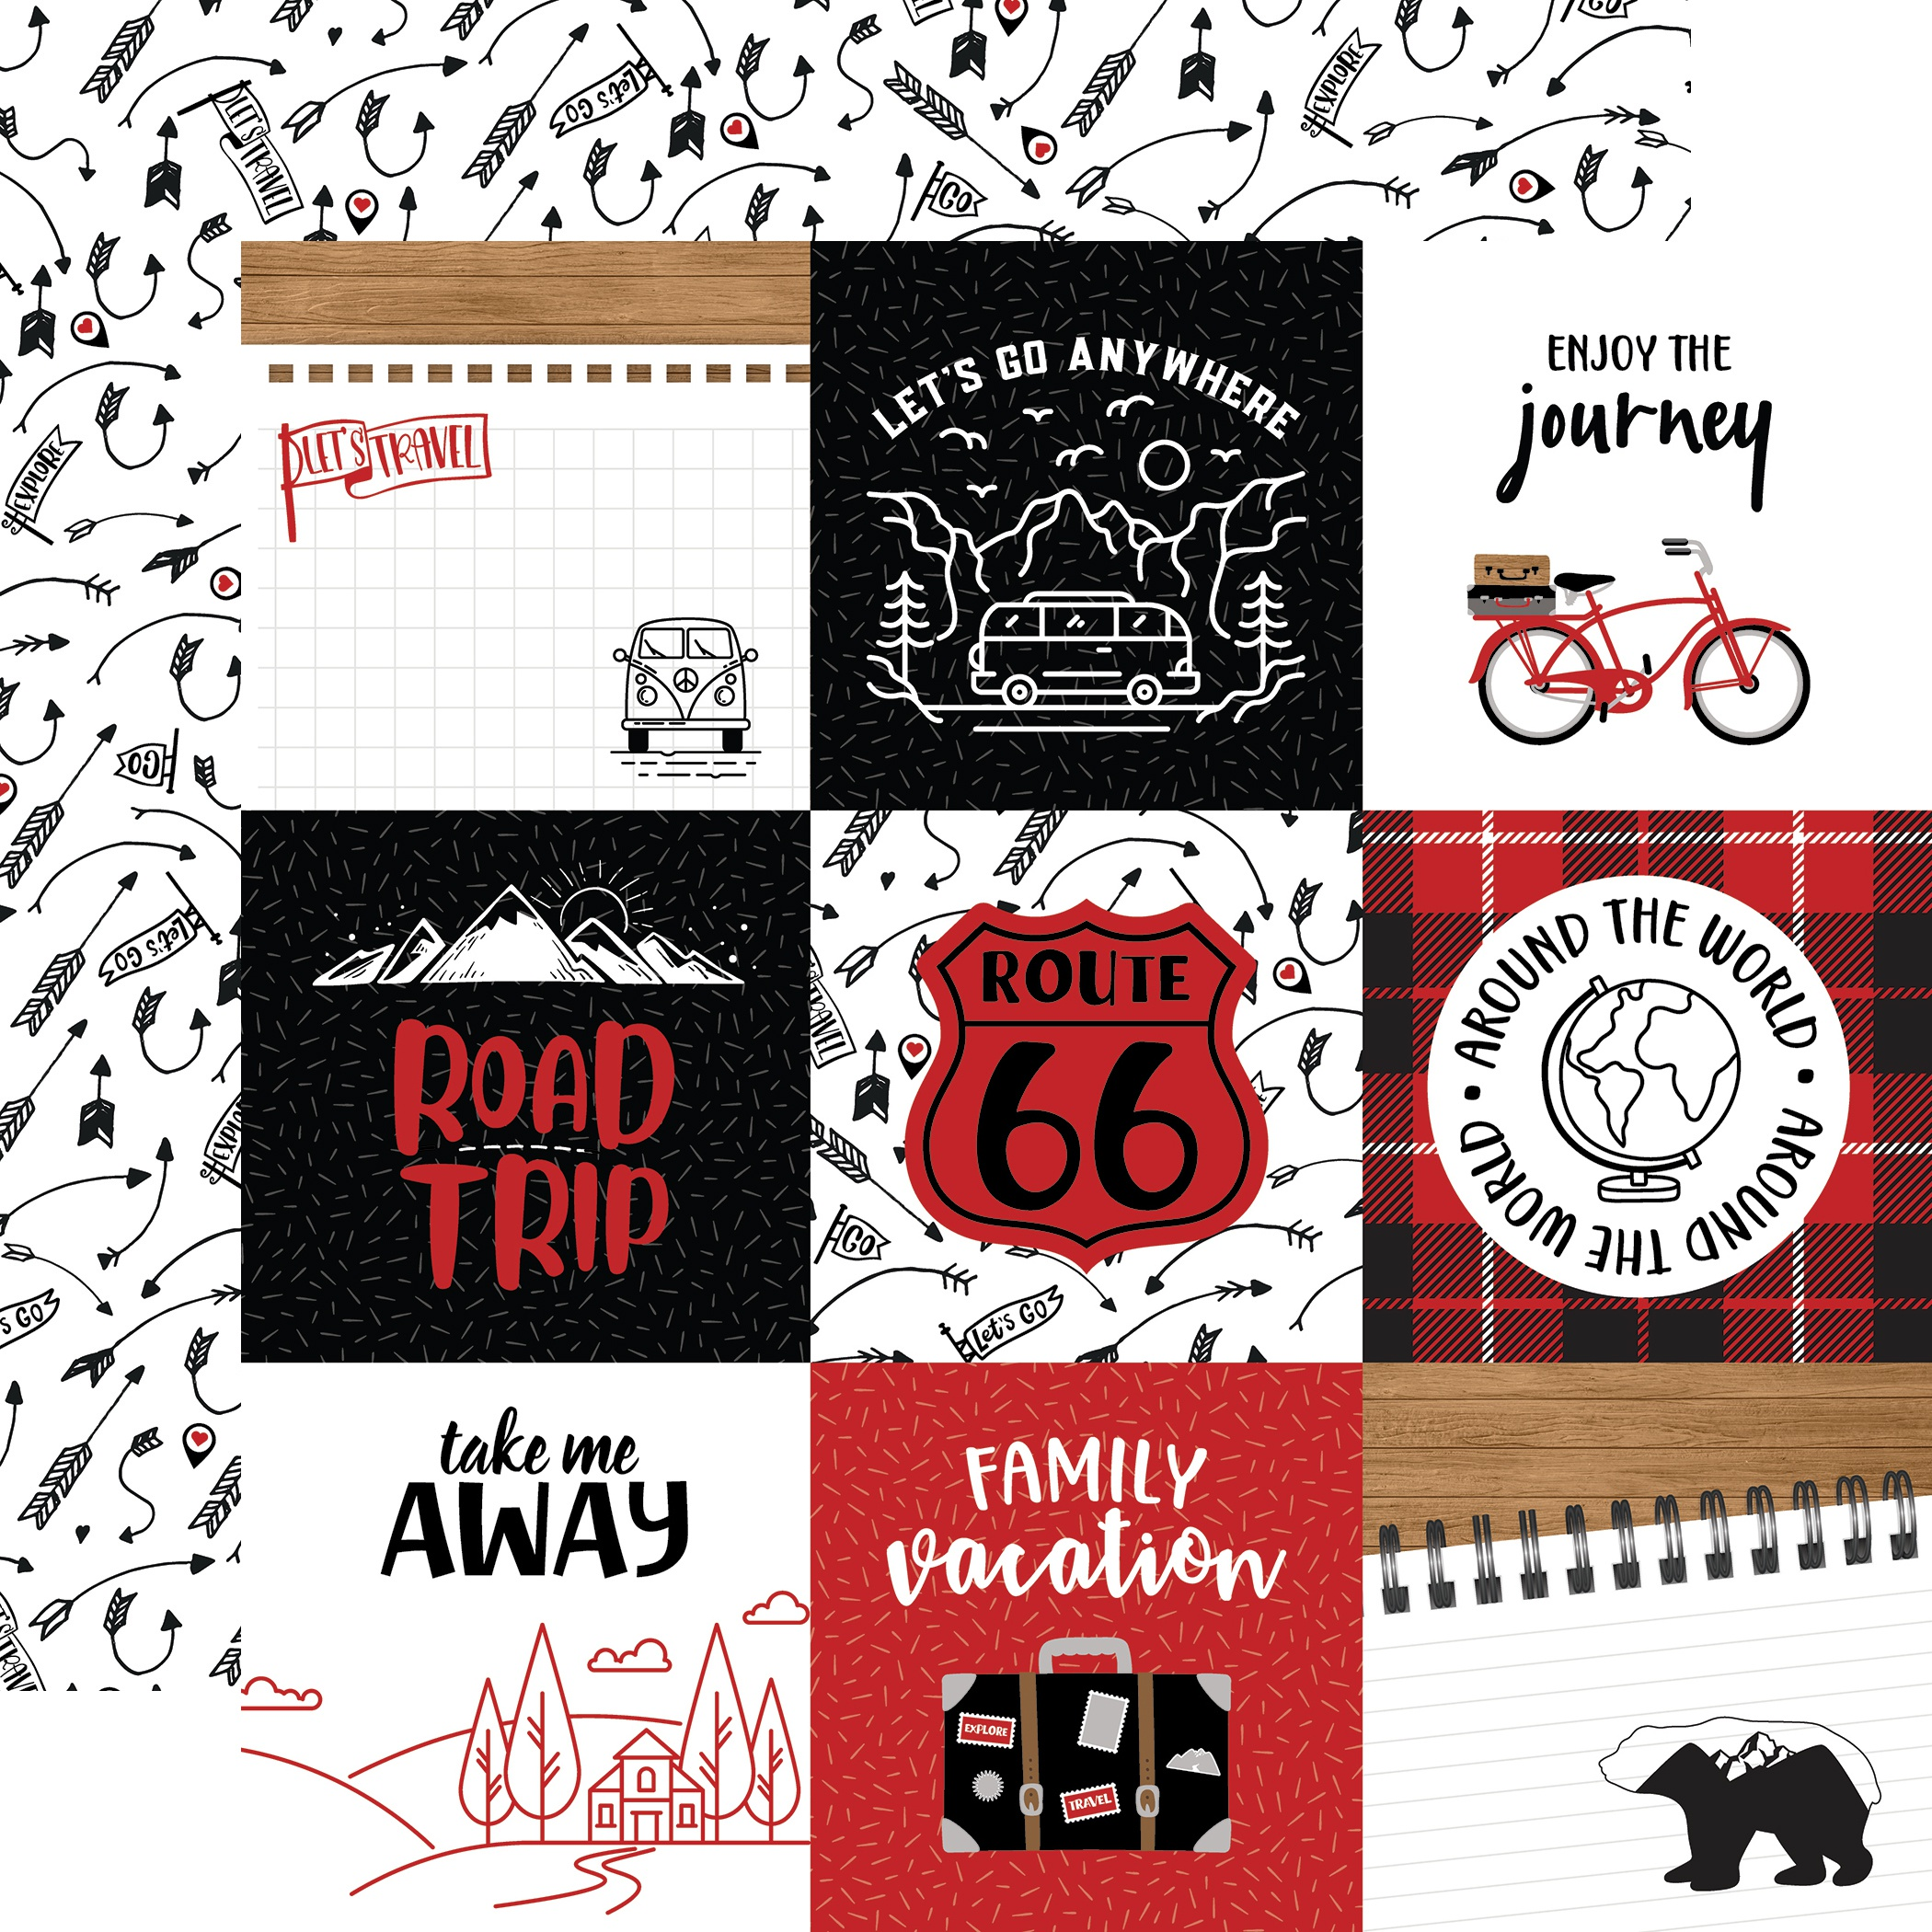 Echo Park - Let's Go Anywhere - 4x4 JOURNALING CARDS - 12x12 Double-Sided Paper